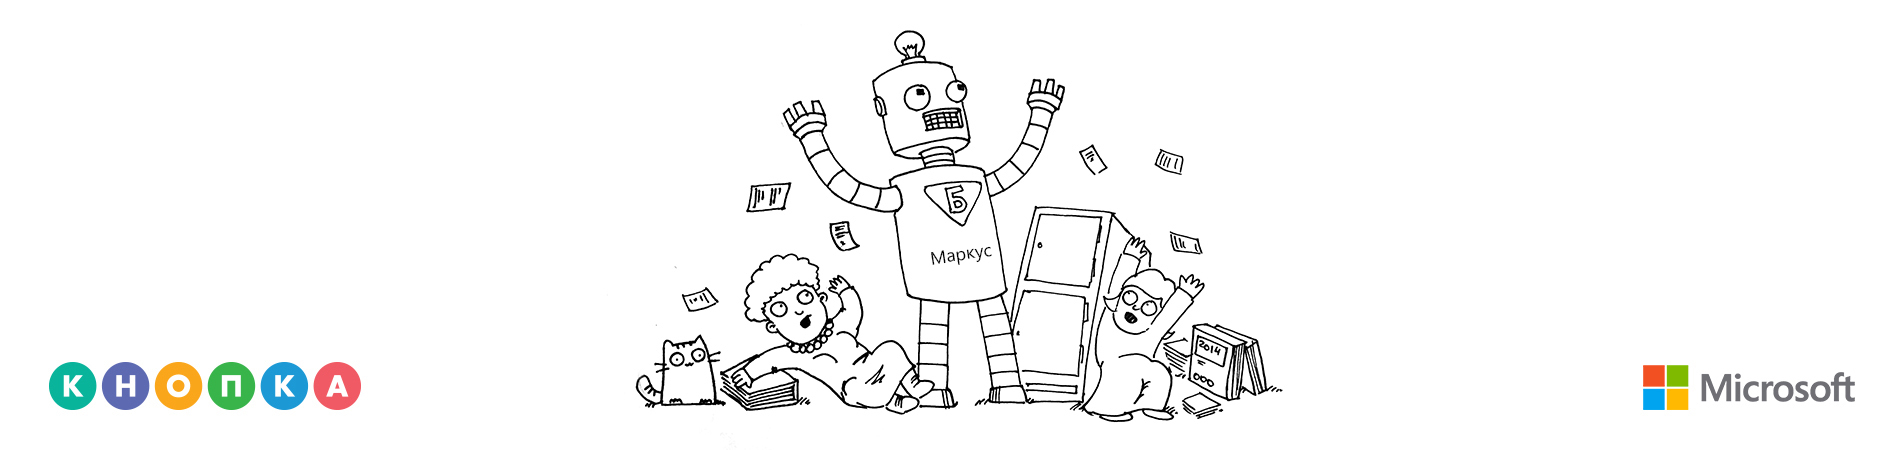 Life a year after the introduction of robots: until the equality is not asked for